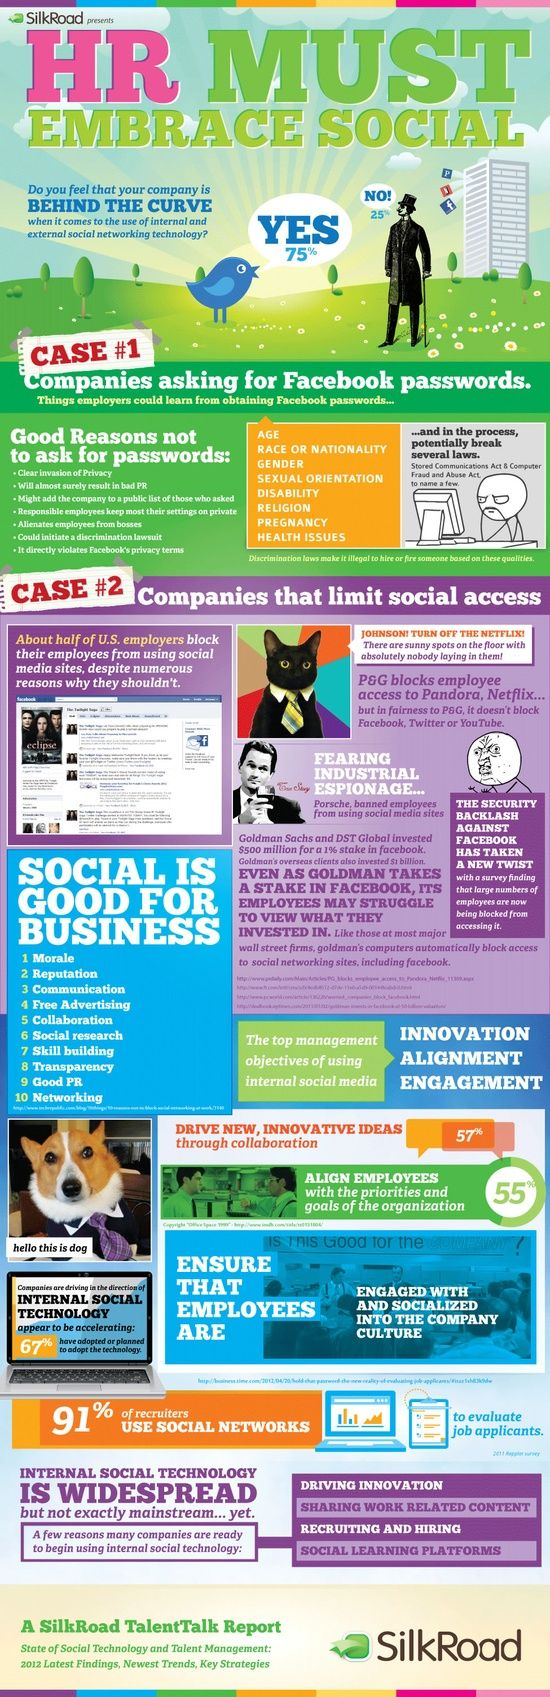 Why HR Must Embrace Social #self personality #softskills #soft skills